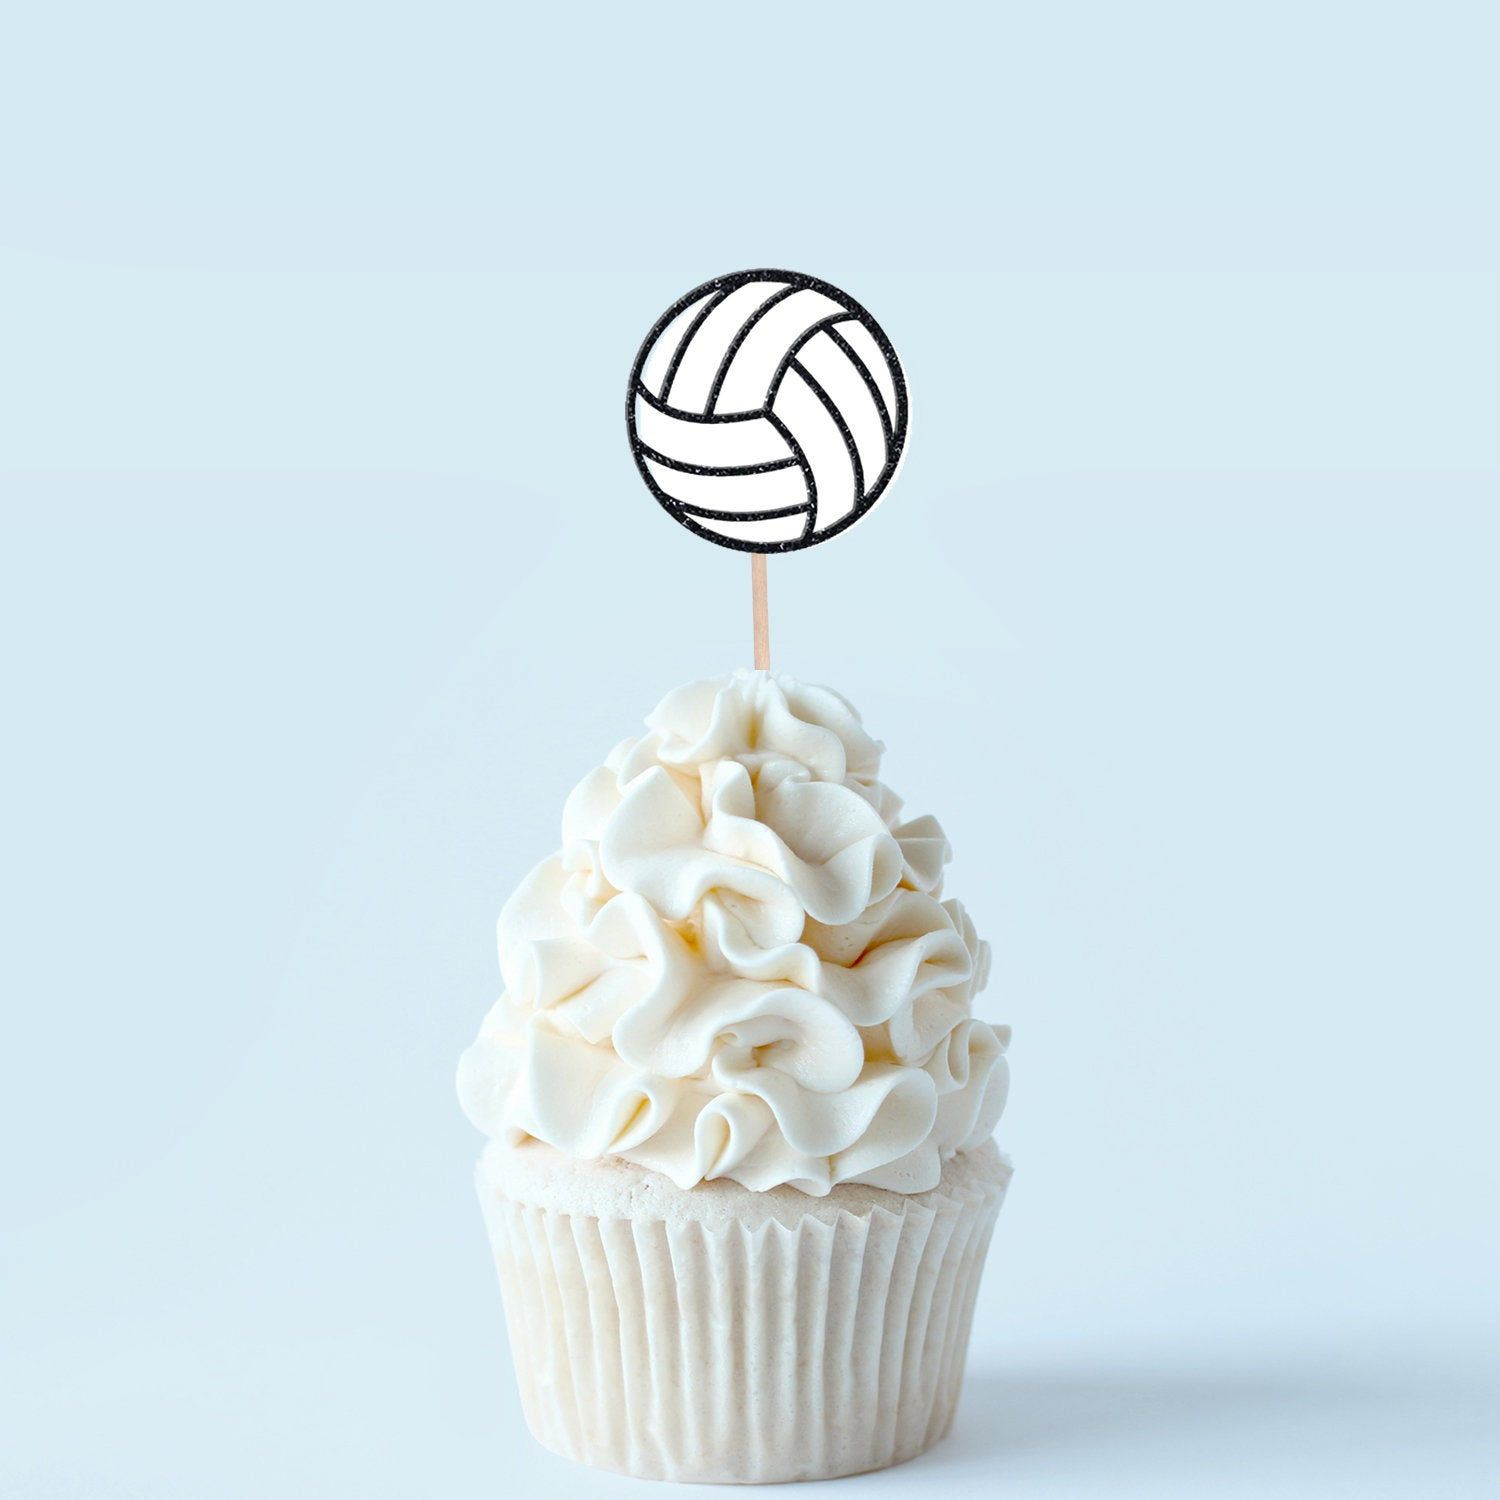 Volleyball Cupcake Topper Sports Decoration Volleyball Player Celebration In 2020 Volleyball Cupcakes Cupcake Toppers